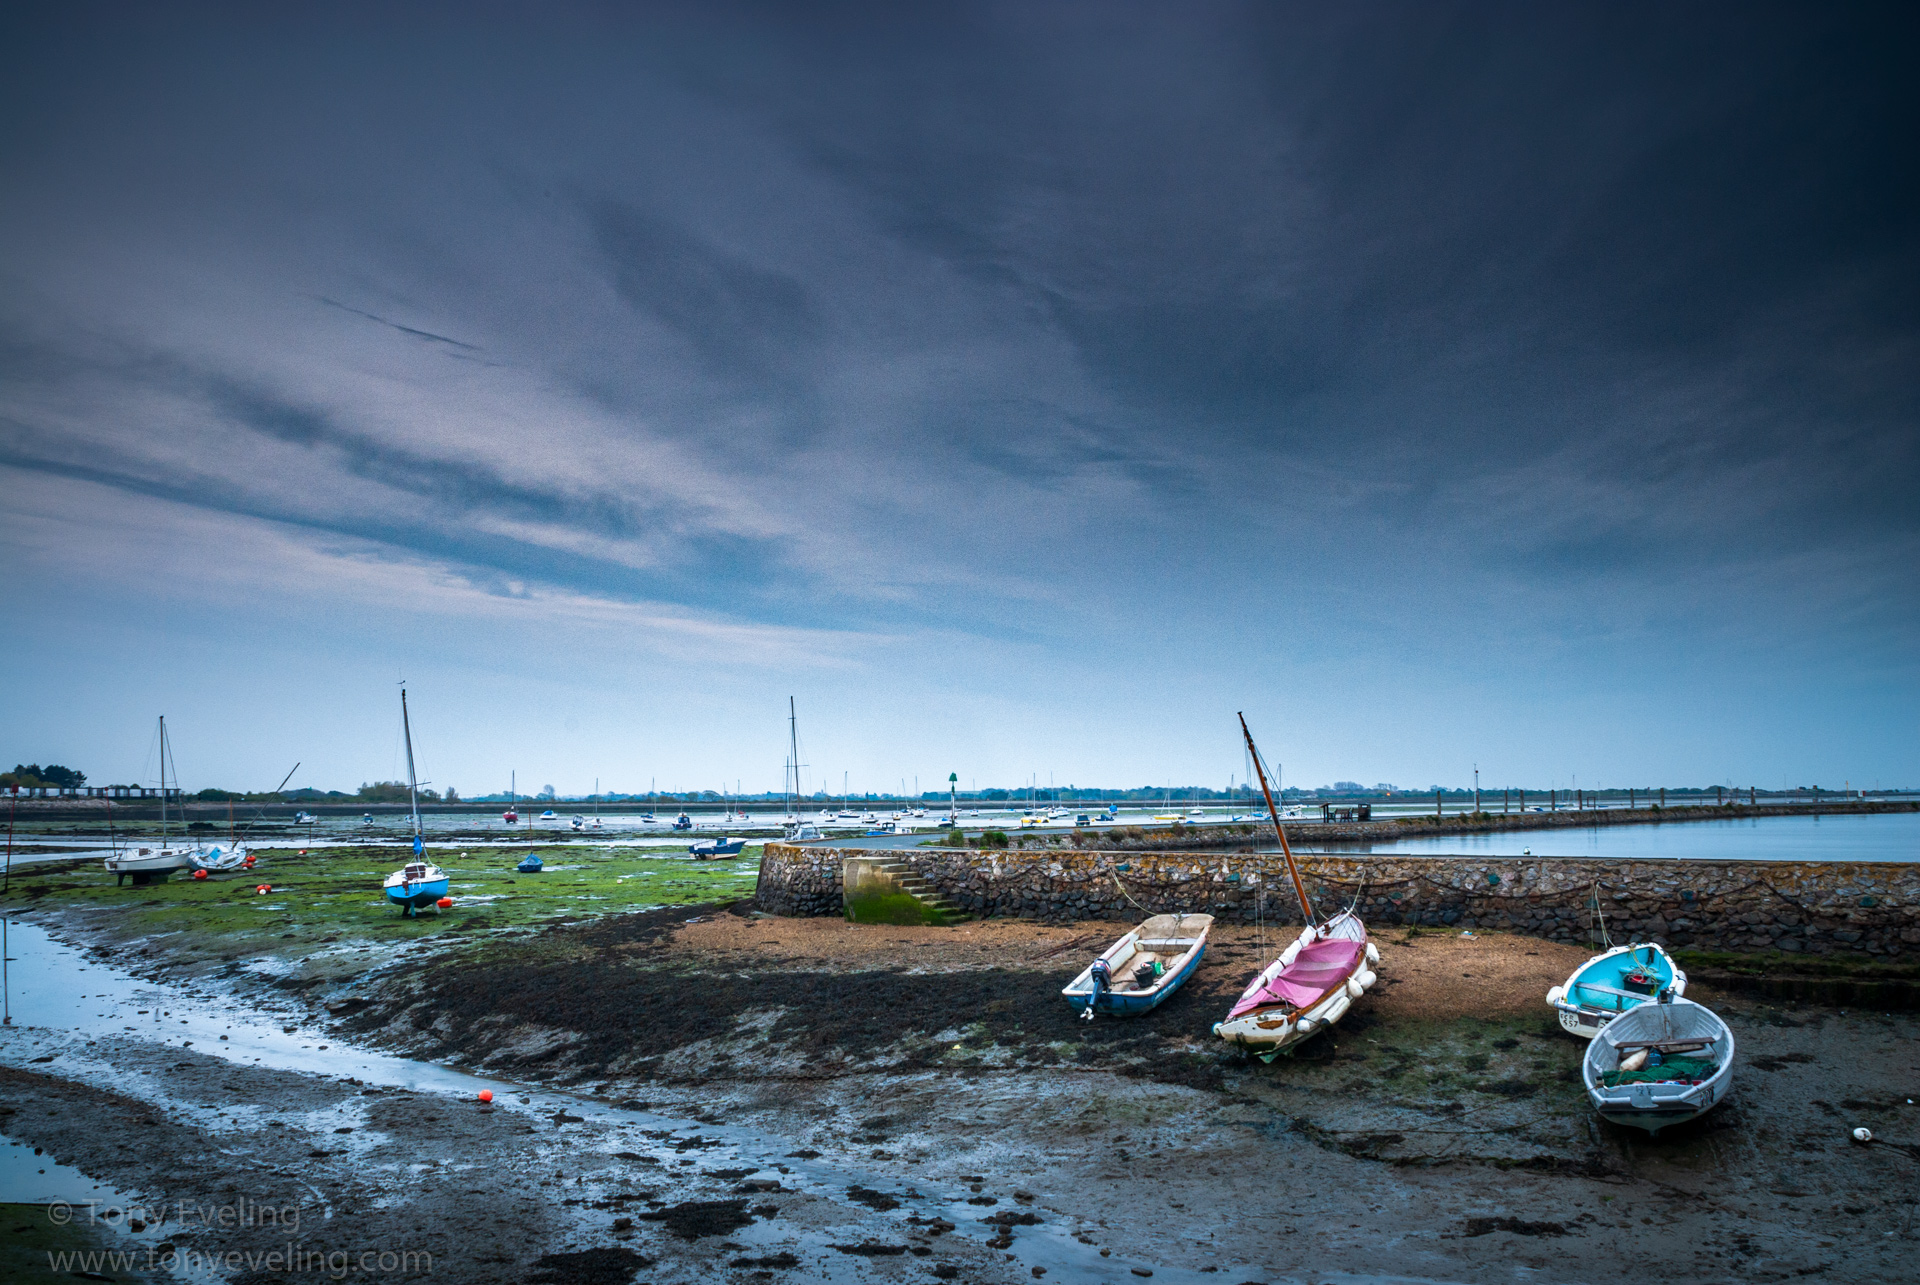 Boats moored at low tide